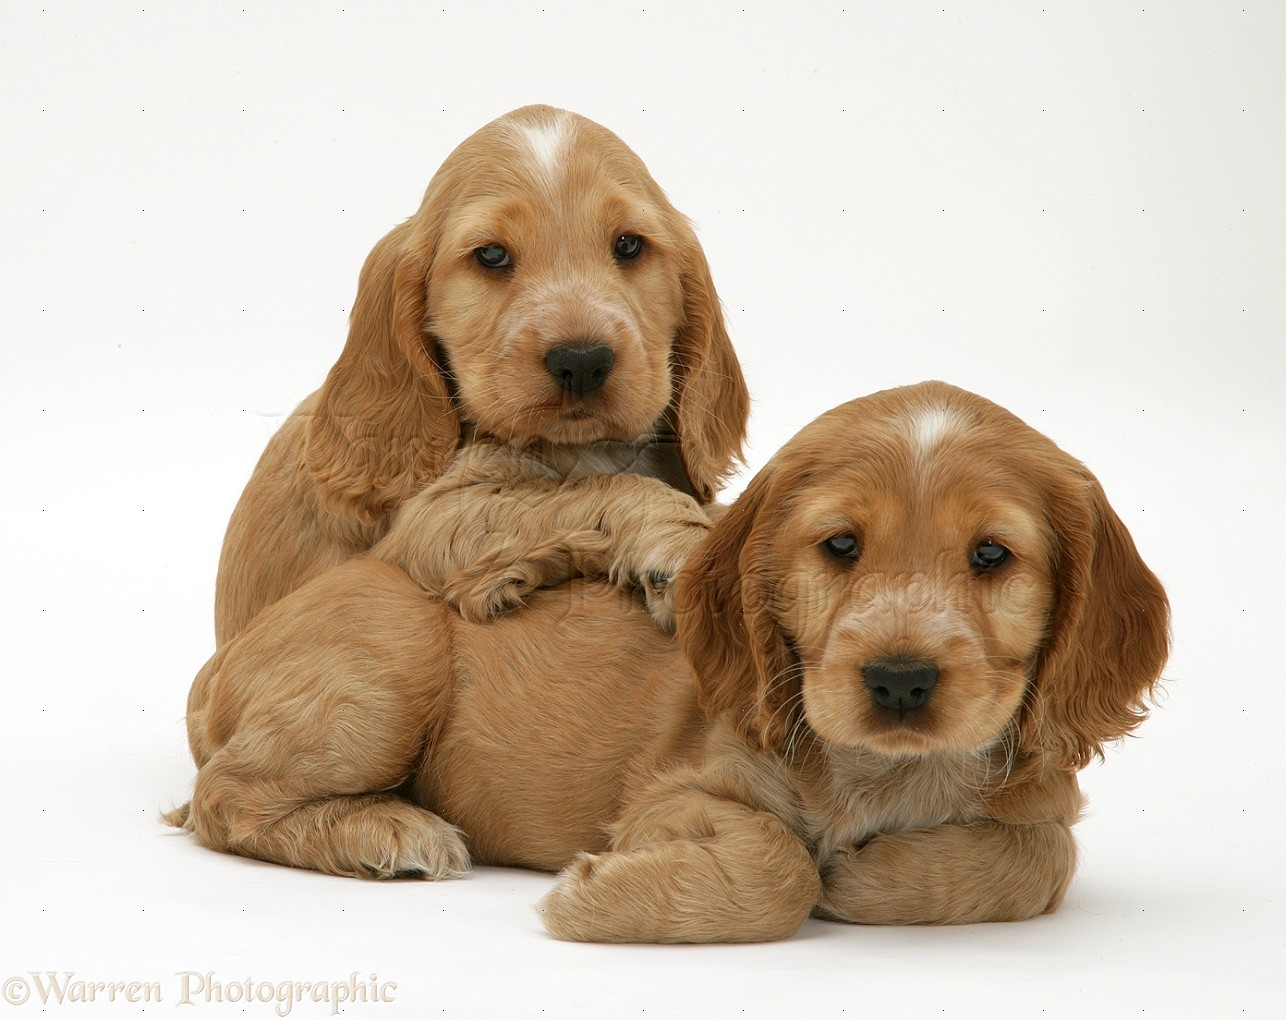 WP22100 Golden Cocker Spaniel puppies Golden Cocker Puppies